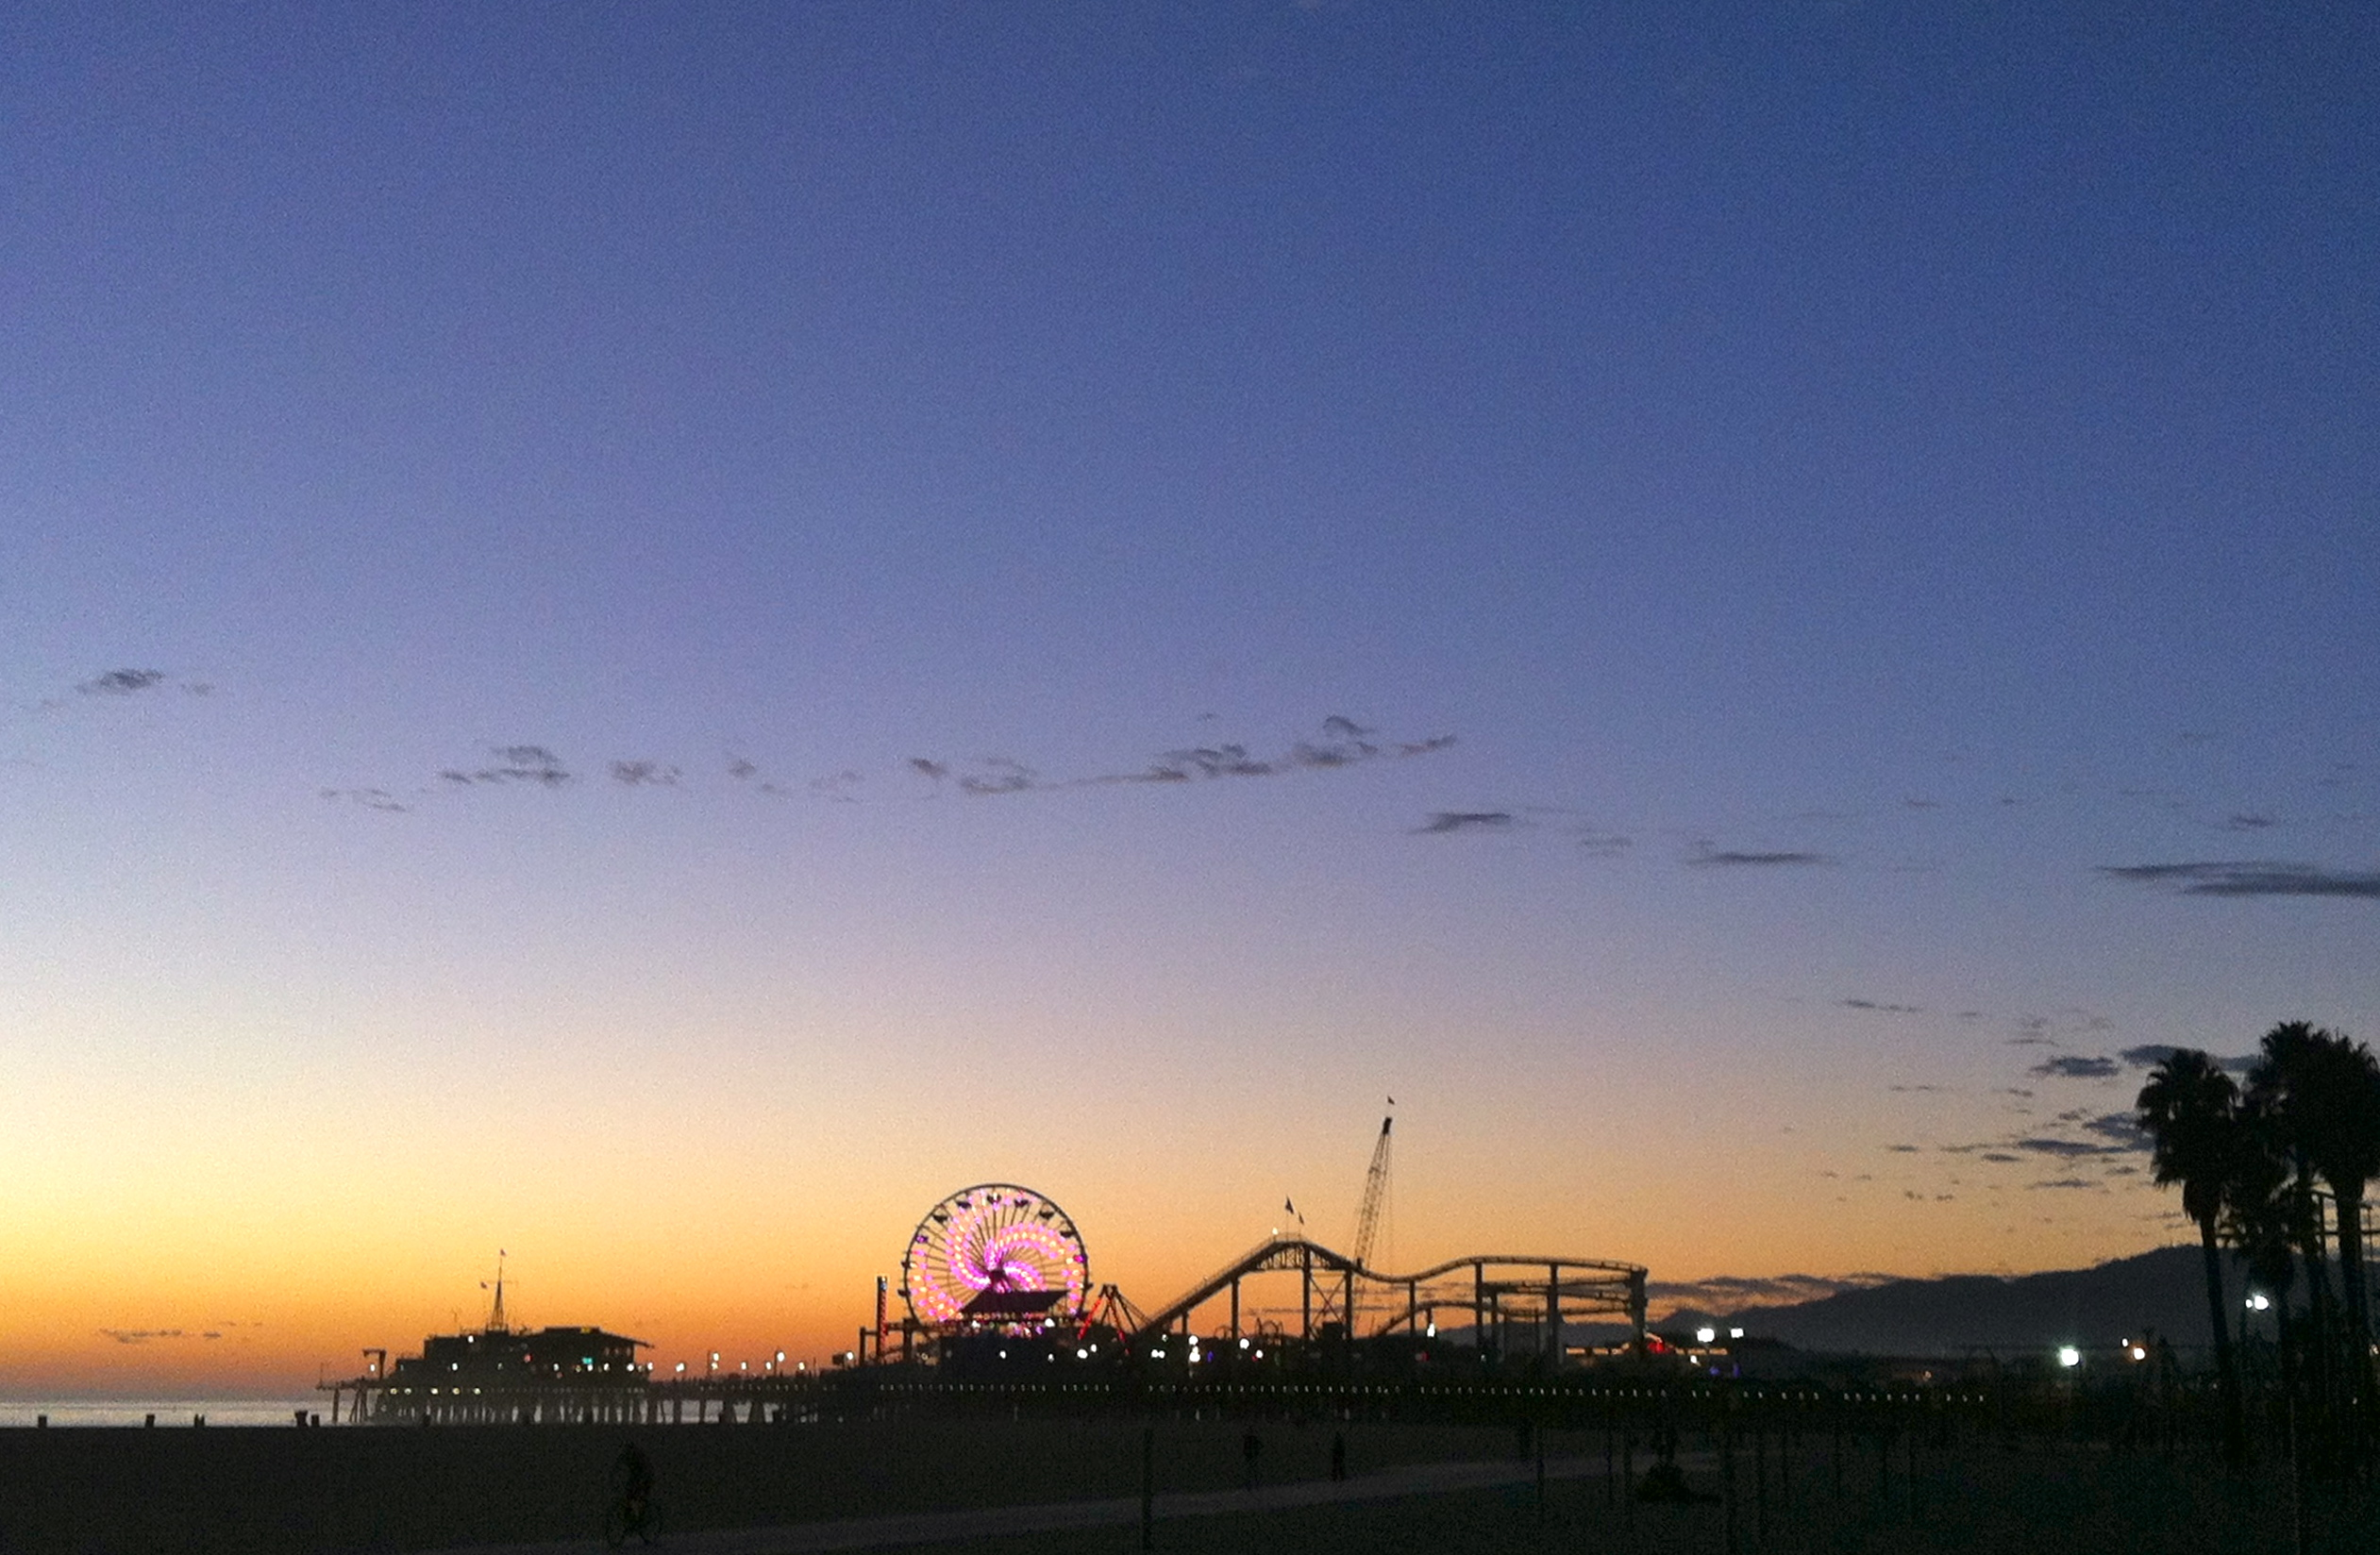 Sunset view over Santa Monica Pier